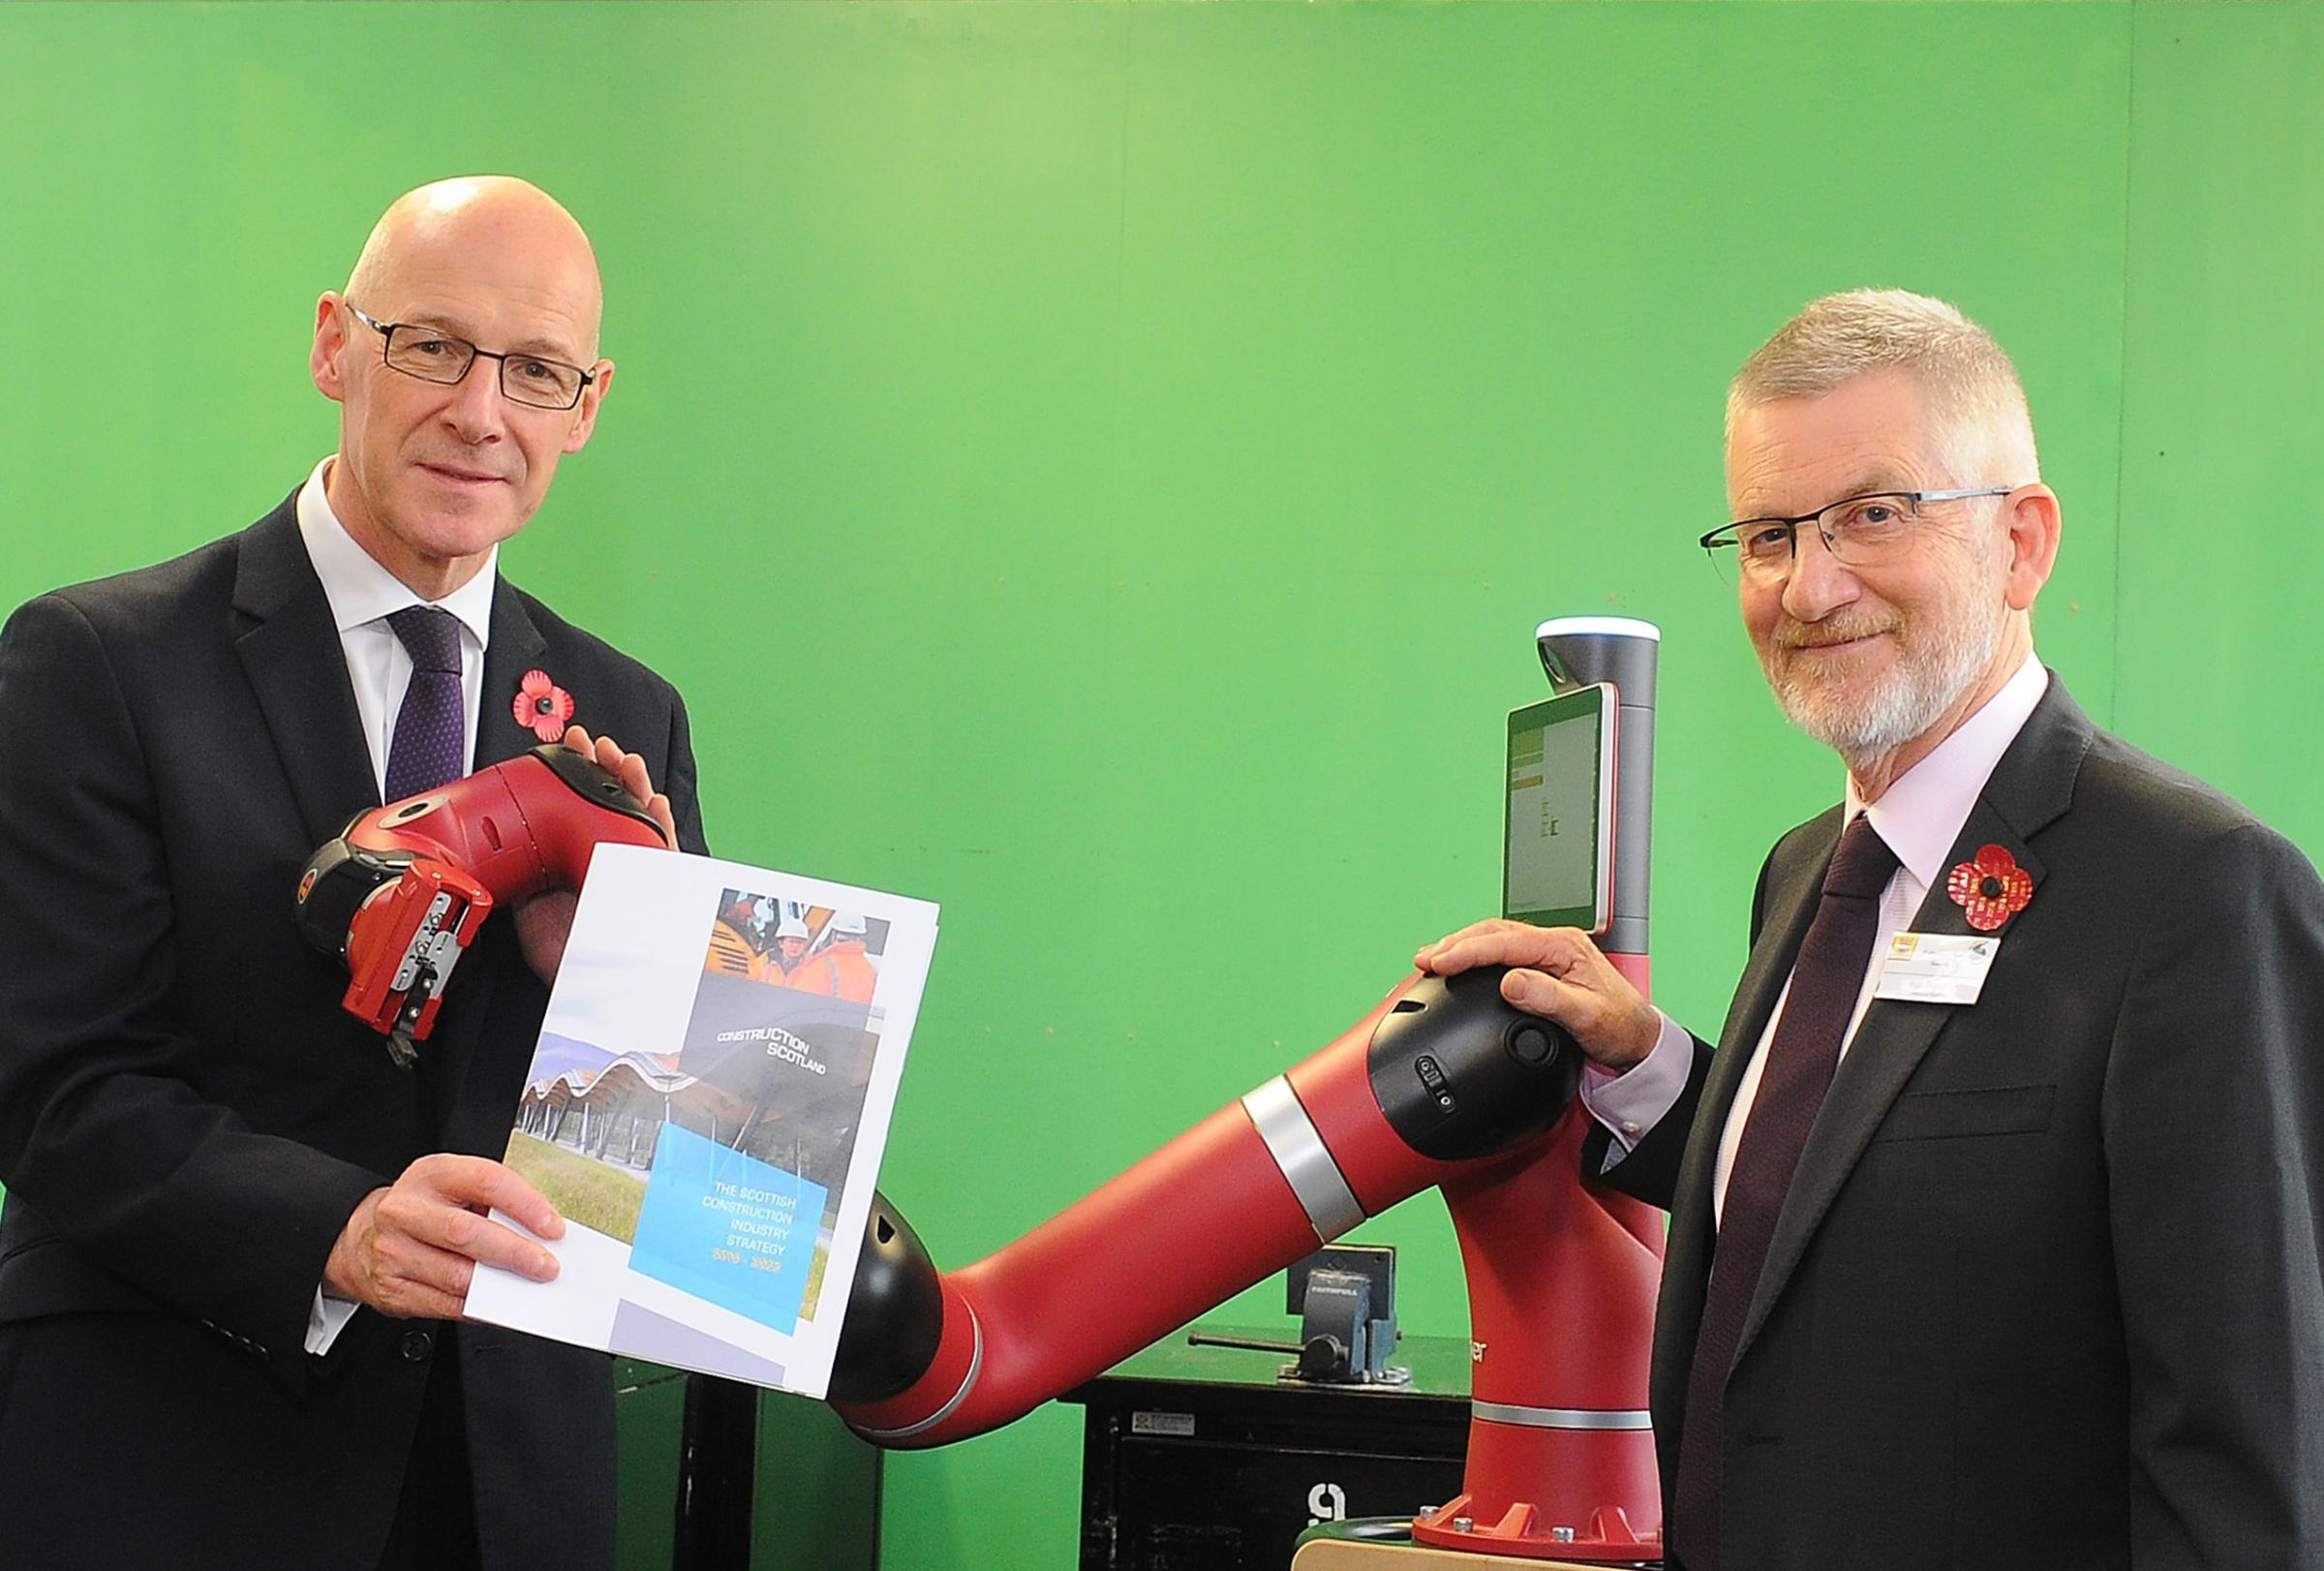 John Swinney MSP and Ron Fraser, Construction Scotland's interim executive director, with Sawyer the collaborative robot